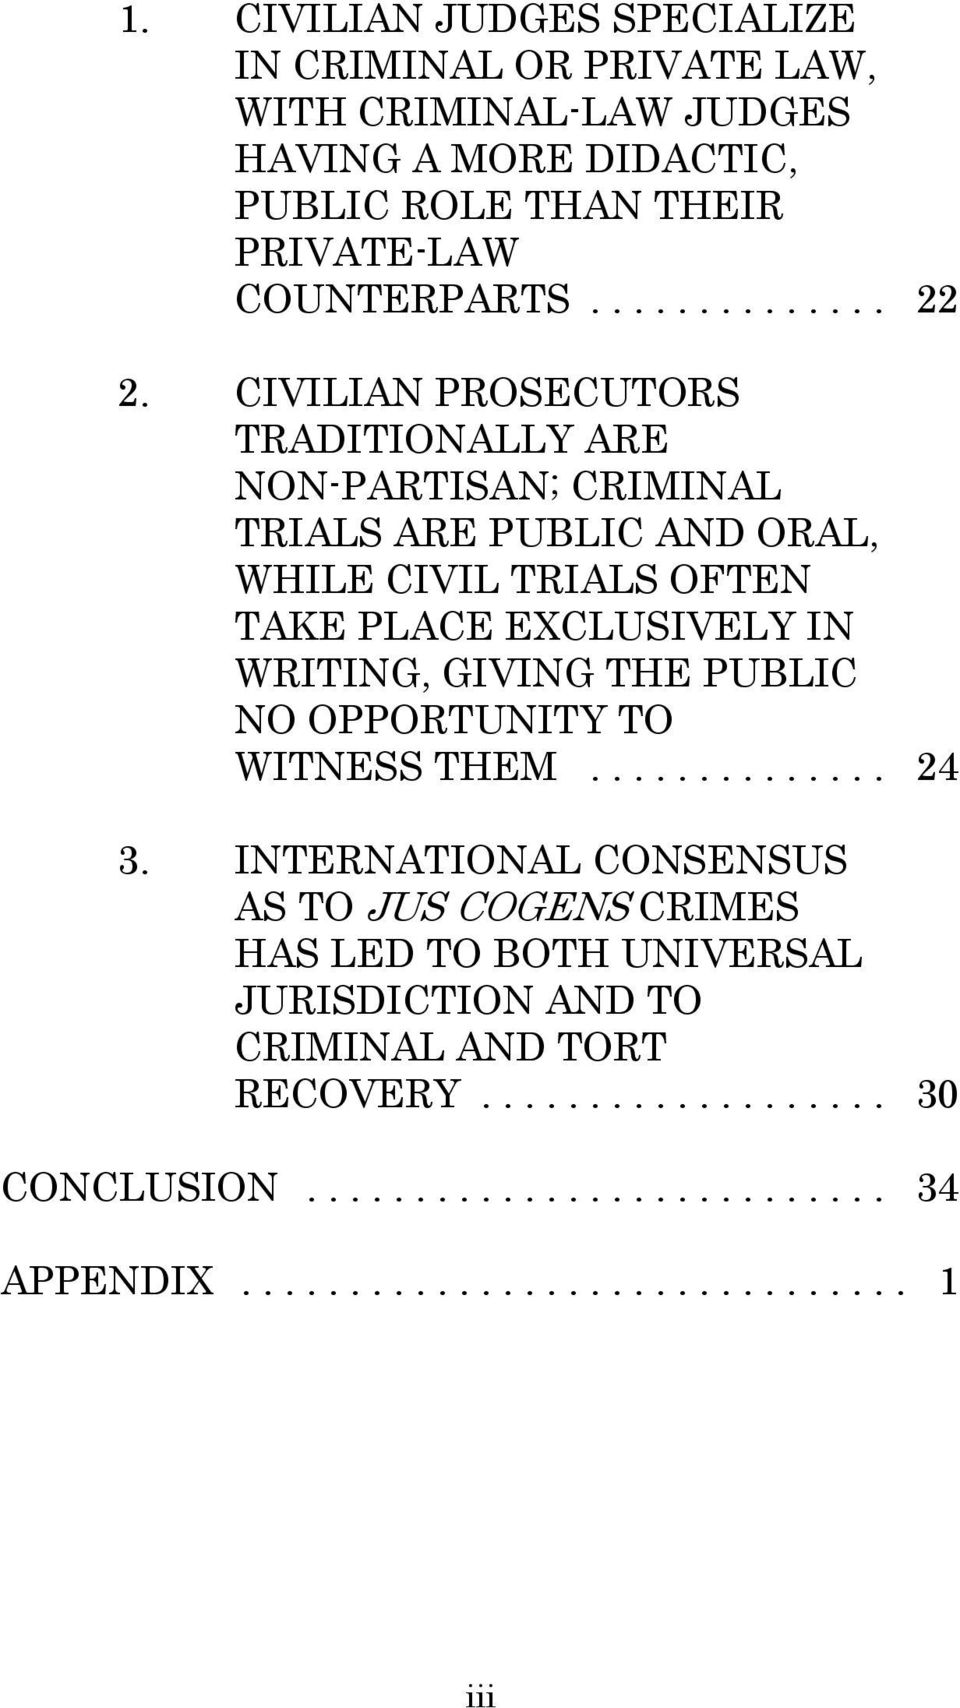 CIVILIAN PROSECUTORS TRADITIONALLY ARE NON-PARTISAN; CRIMINAL TRIALS ARE PUBLIC AND ORAL, WHILE CIVIL TRIALS OFTEN TAKE PLACE